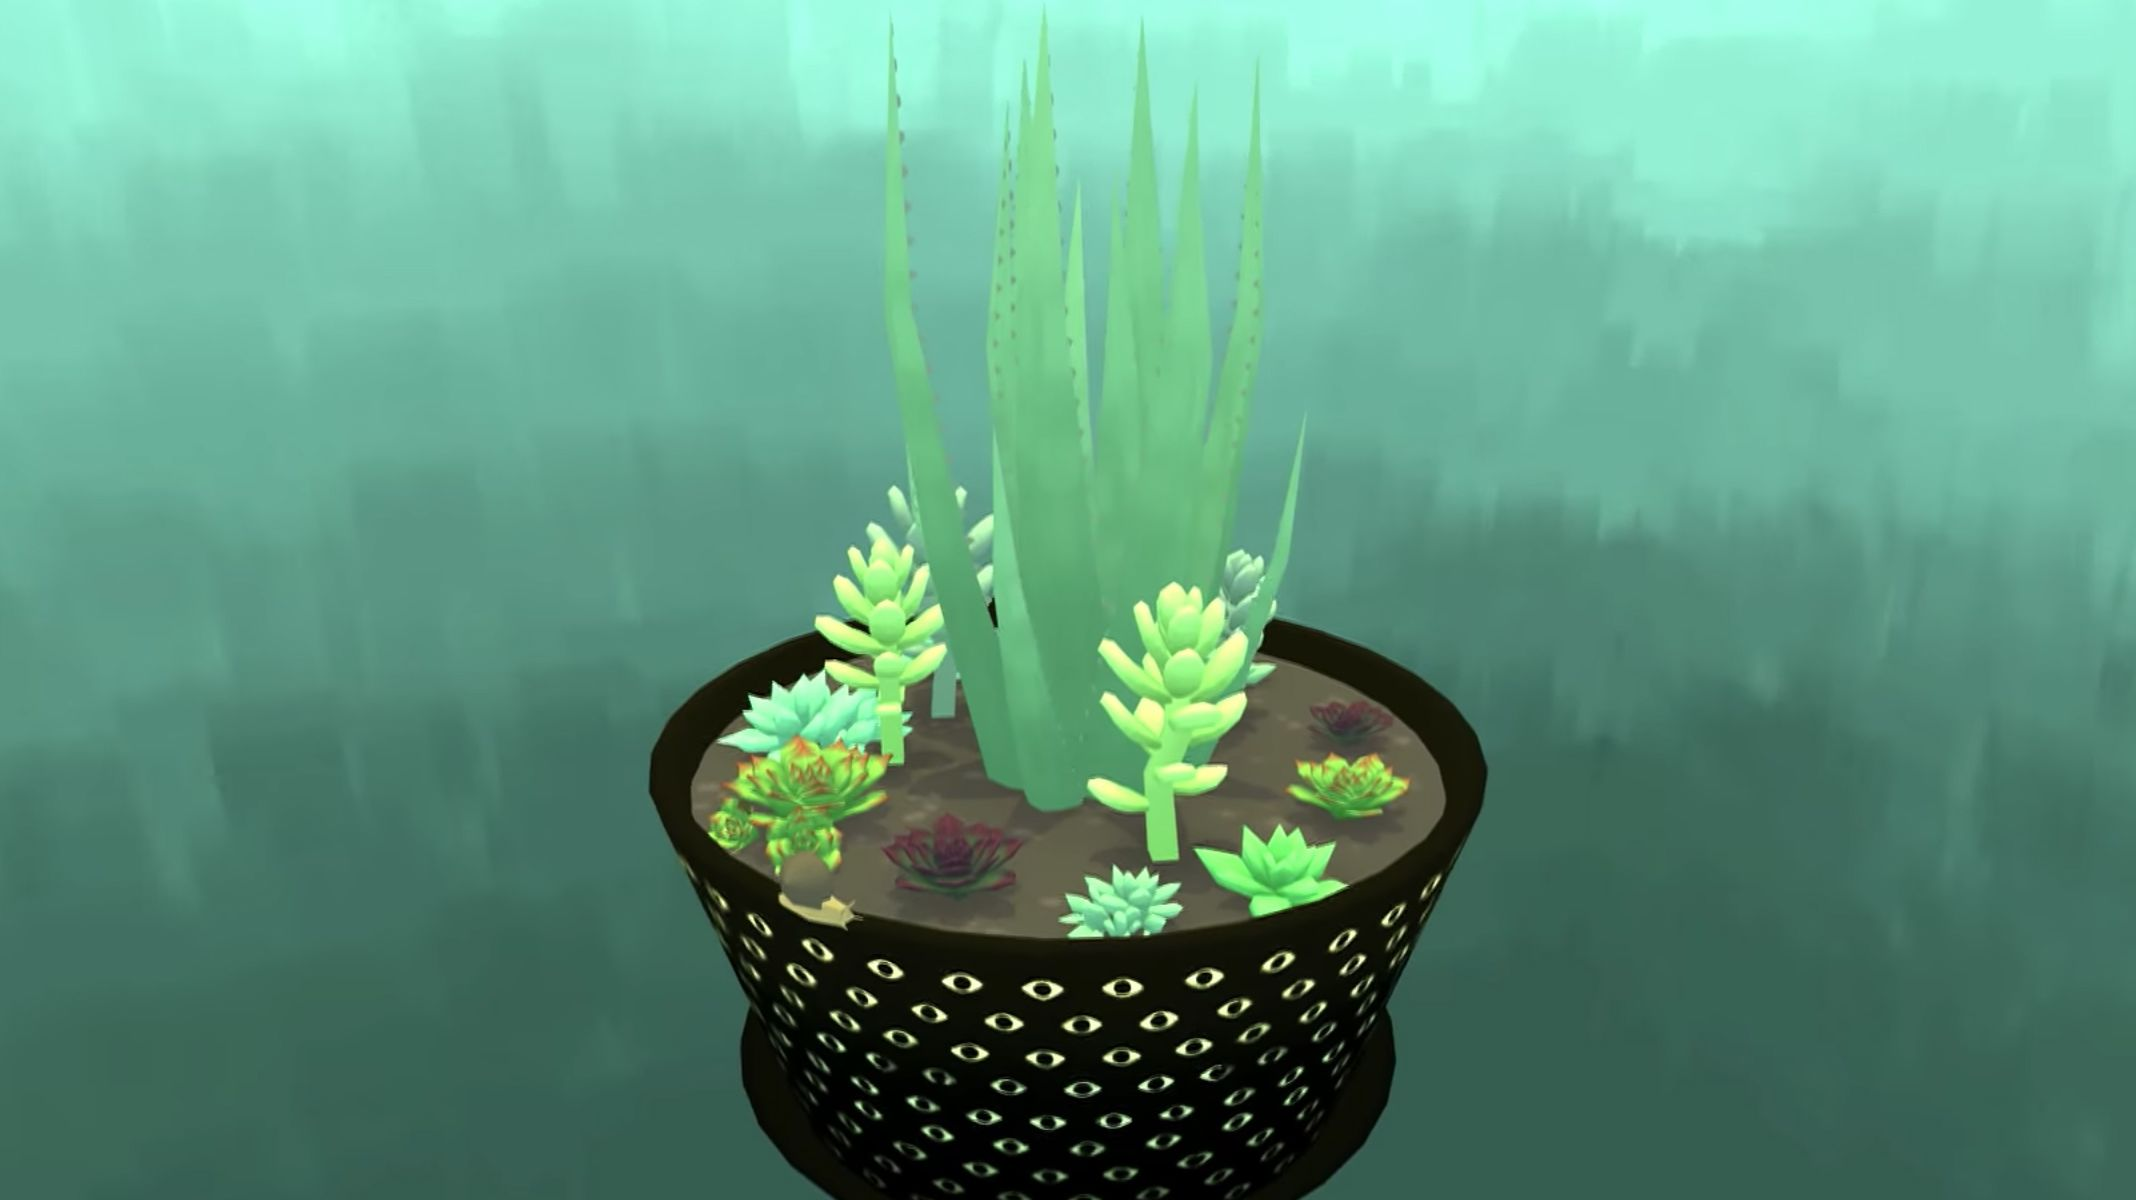 5 Smartphone Games That Let You Tend Plants and Chill Out ... on asparagus fern care, indigo plant care, jelly bean plant care, shasta daisy care, tequila plant care, parrot plant care, daylily care, mandevilla plant care, sour diesel plant care, rubber plant care, kiwi plant care, poker plant care, pipe plant care, mint plant care, pearl plant care, monkey plant care, balloon plant care, frost plant care, stick plant care, sensitive plant care,